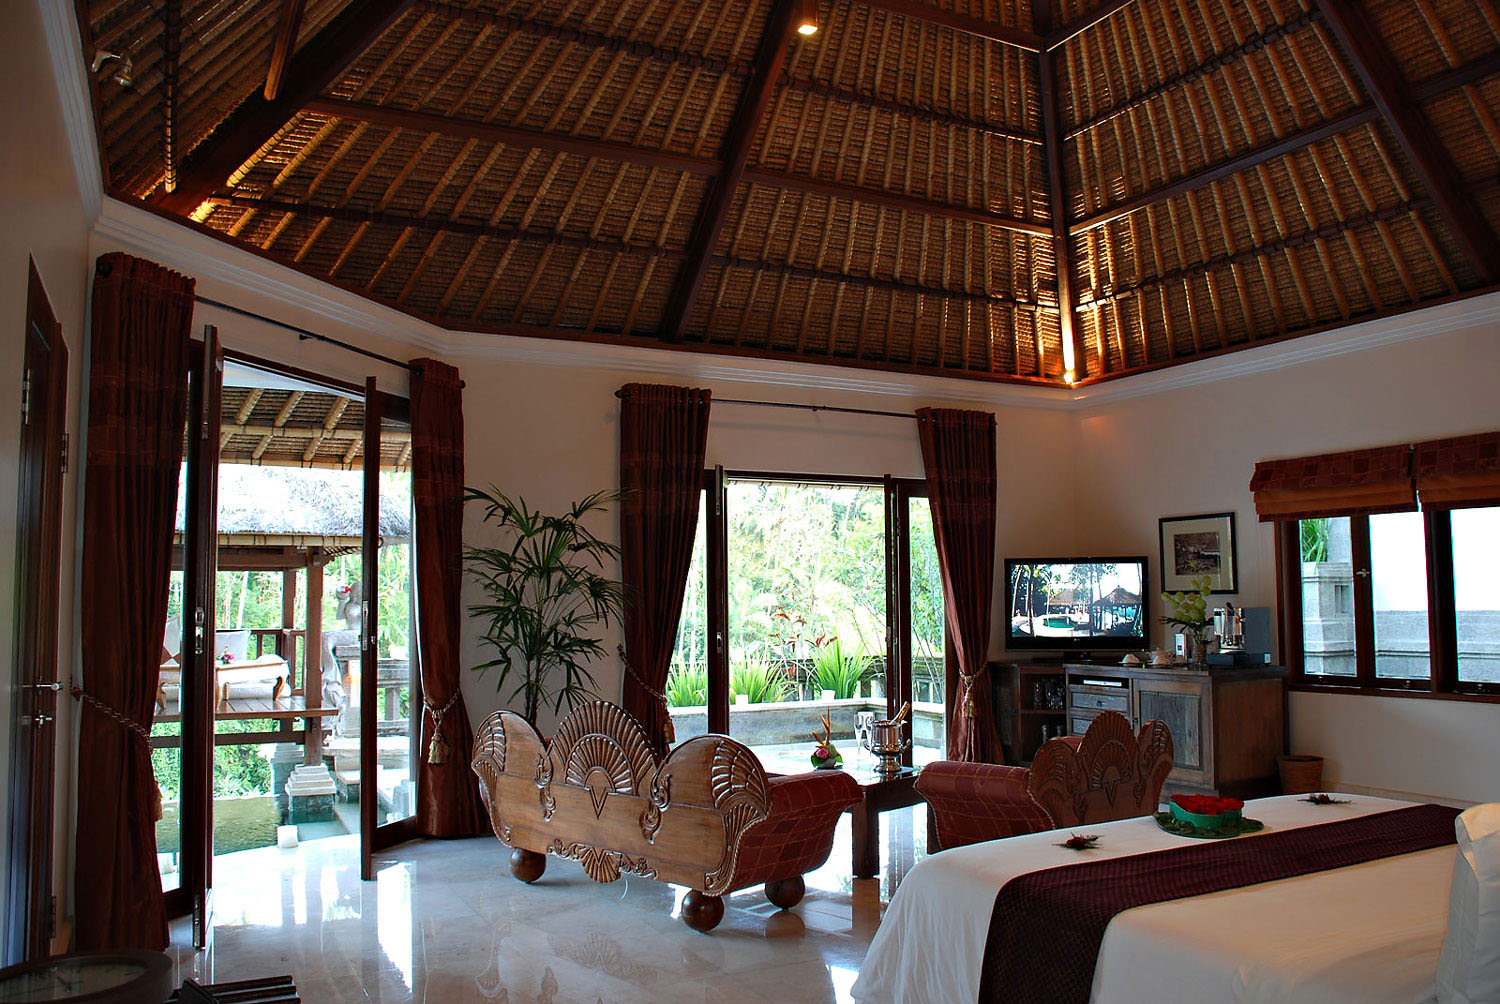 Romantic Viceroy Bali Resort In Ubud Idesignarch Interior Design Architecture Interior